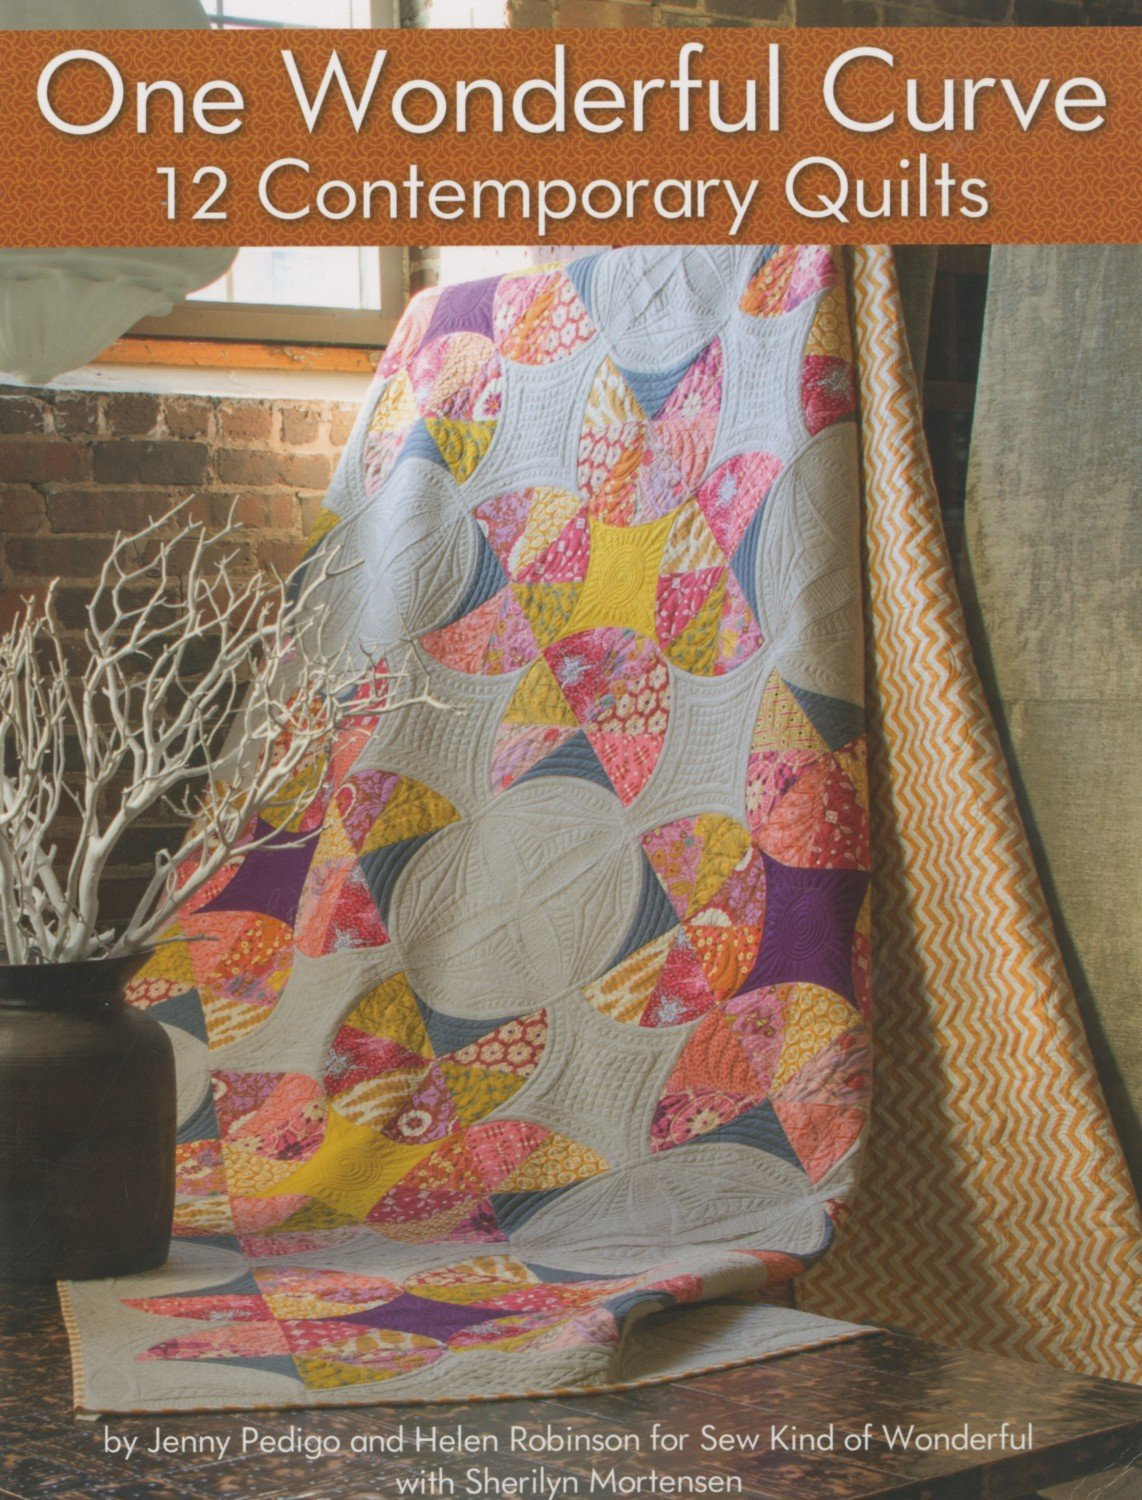 One Wonderful Curve 12 Contemporary Quilts